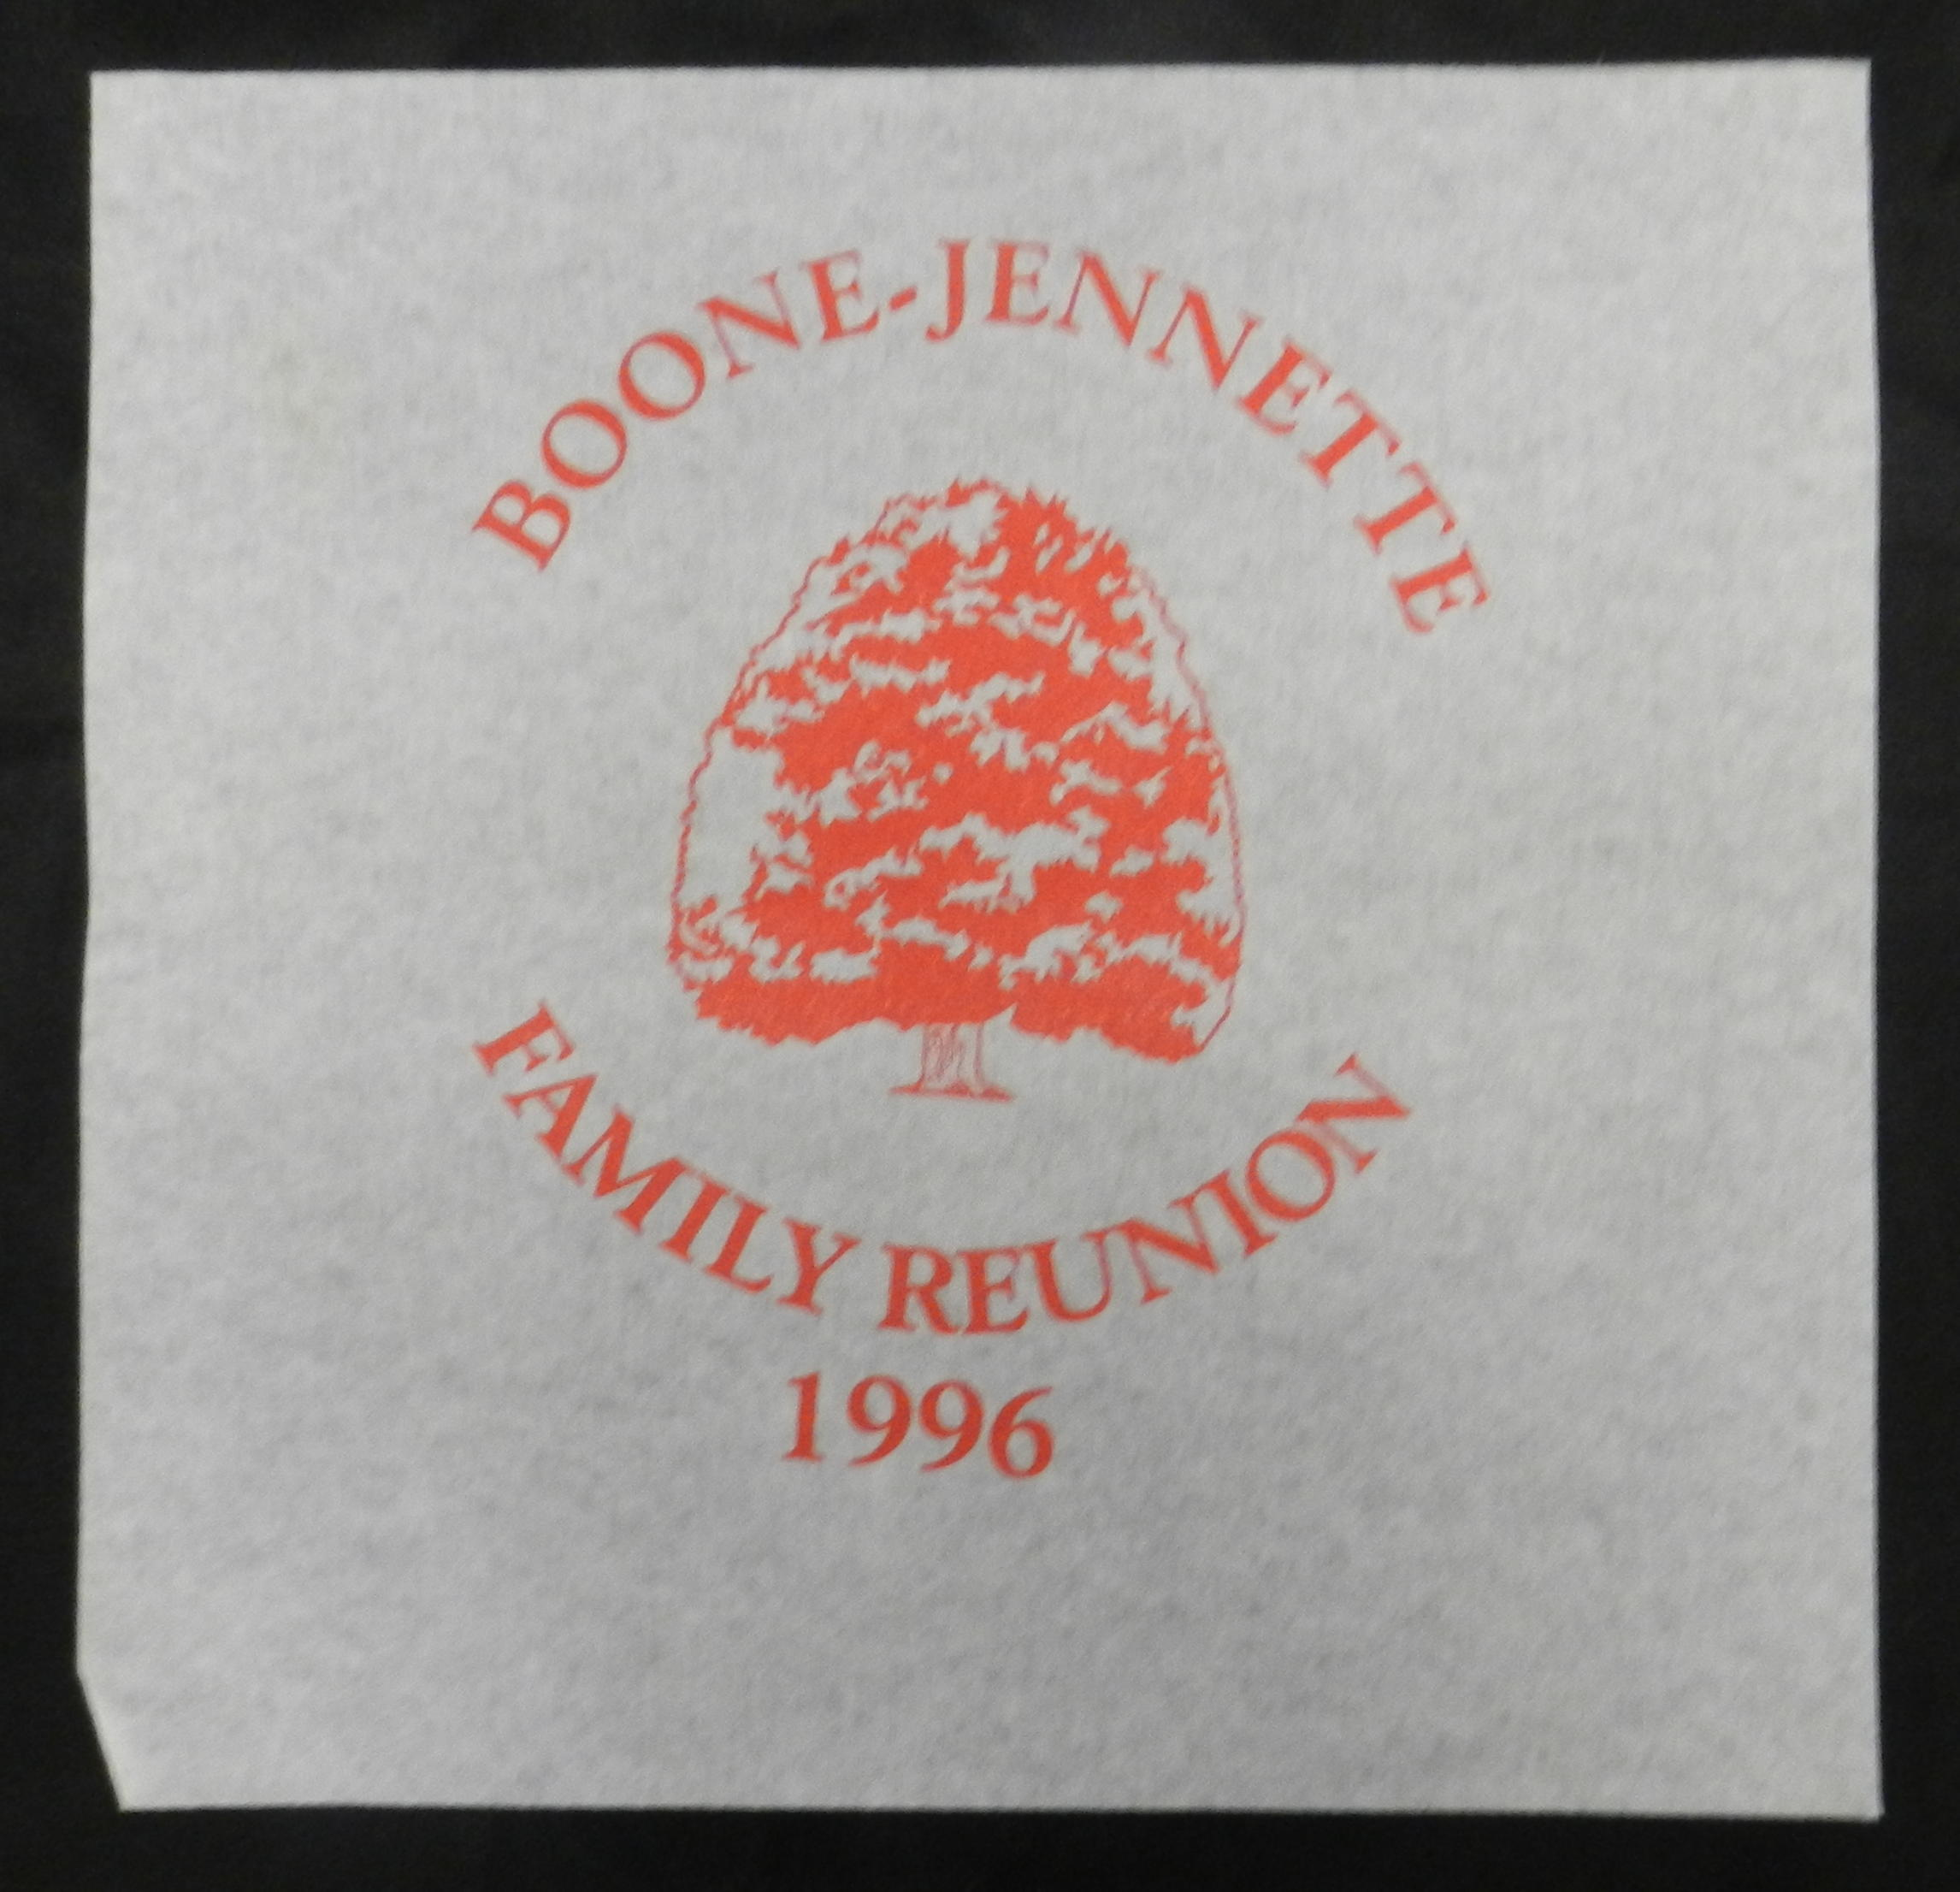 Boone Jente Family Reunion Tree Screen Print Transfer Wall